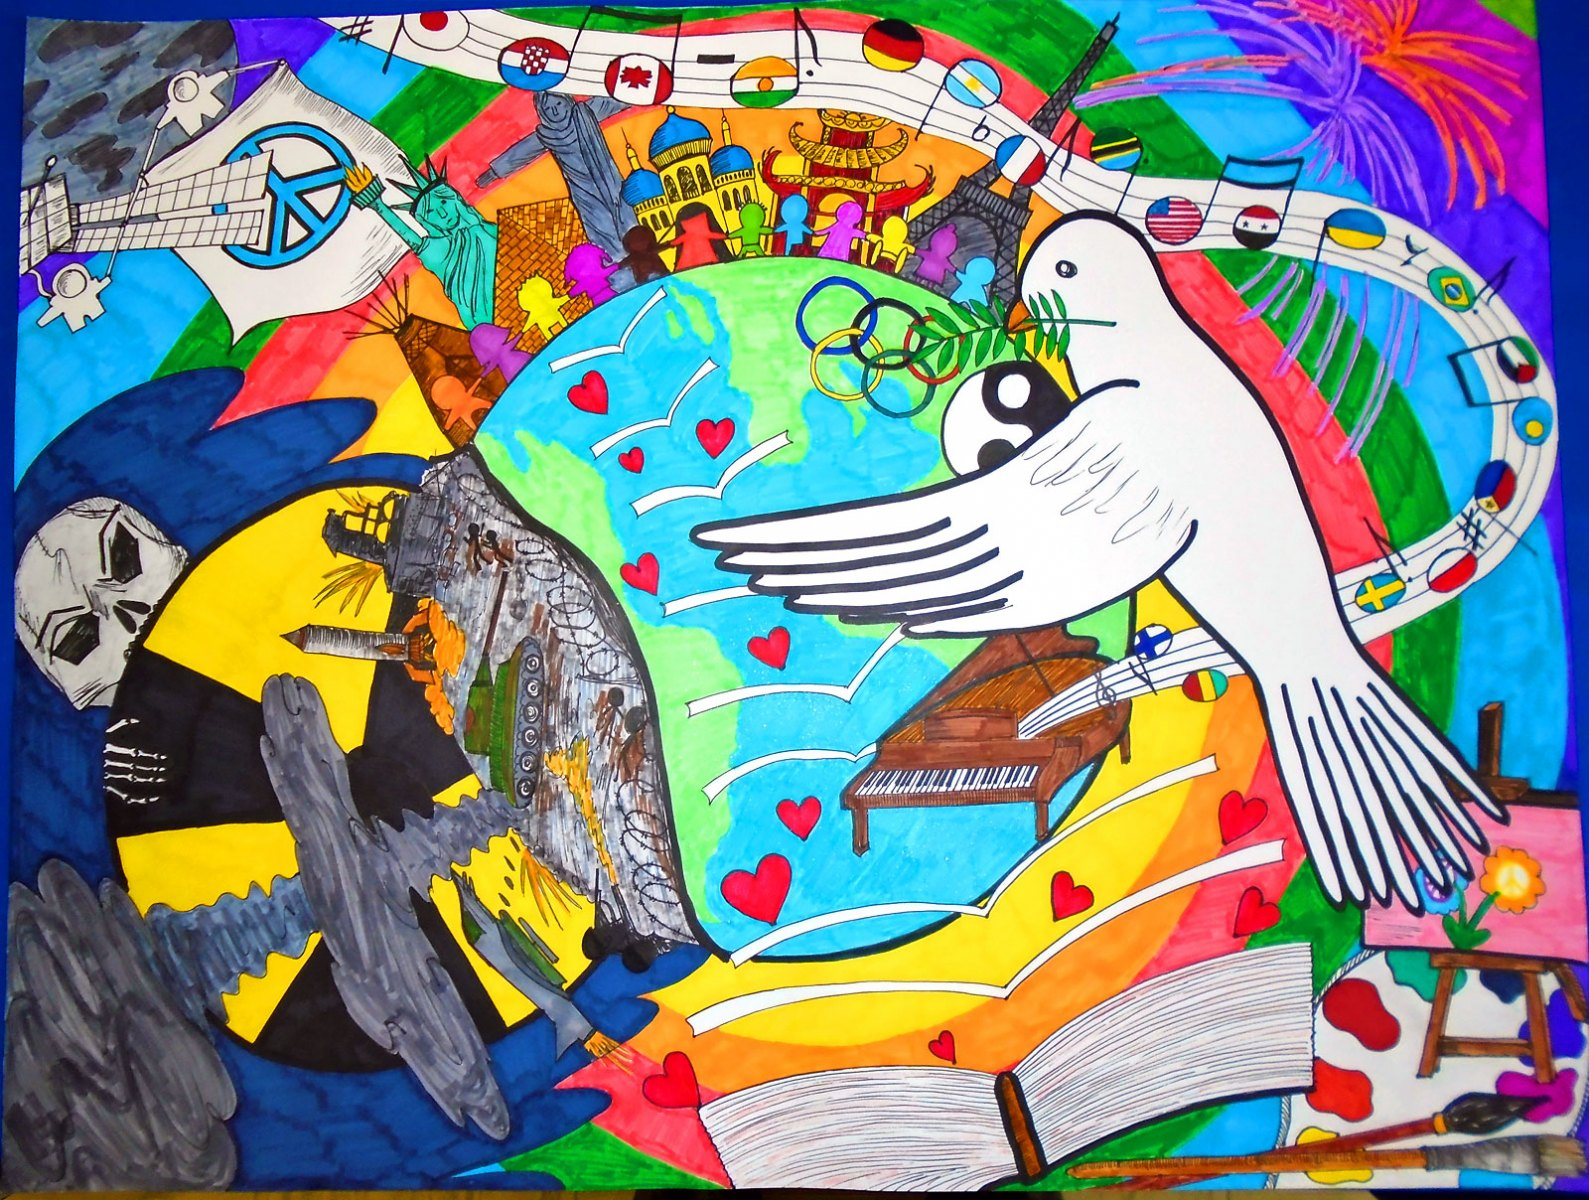 2017 District winning Peace Poster created by Luka Begovic, Gr. 8 student at Richard S. Fowler Catholic JHS in St. Albert, AB